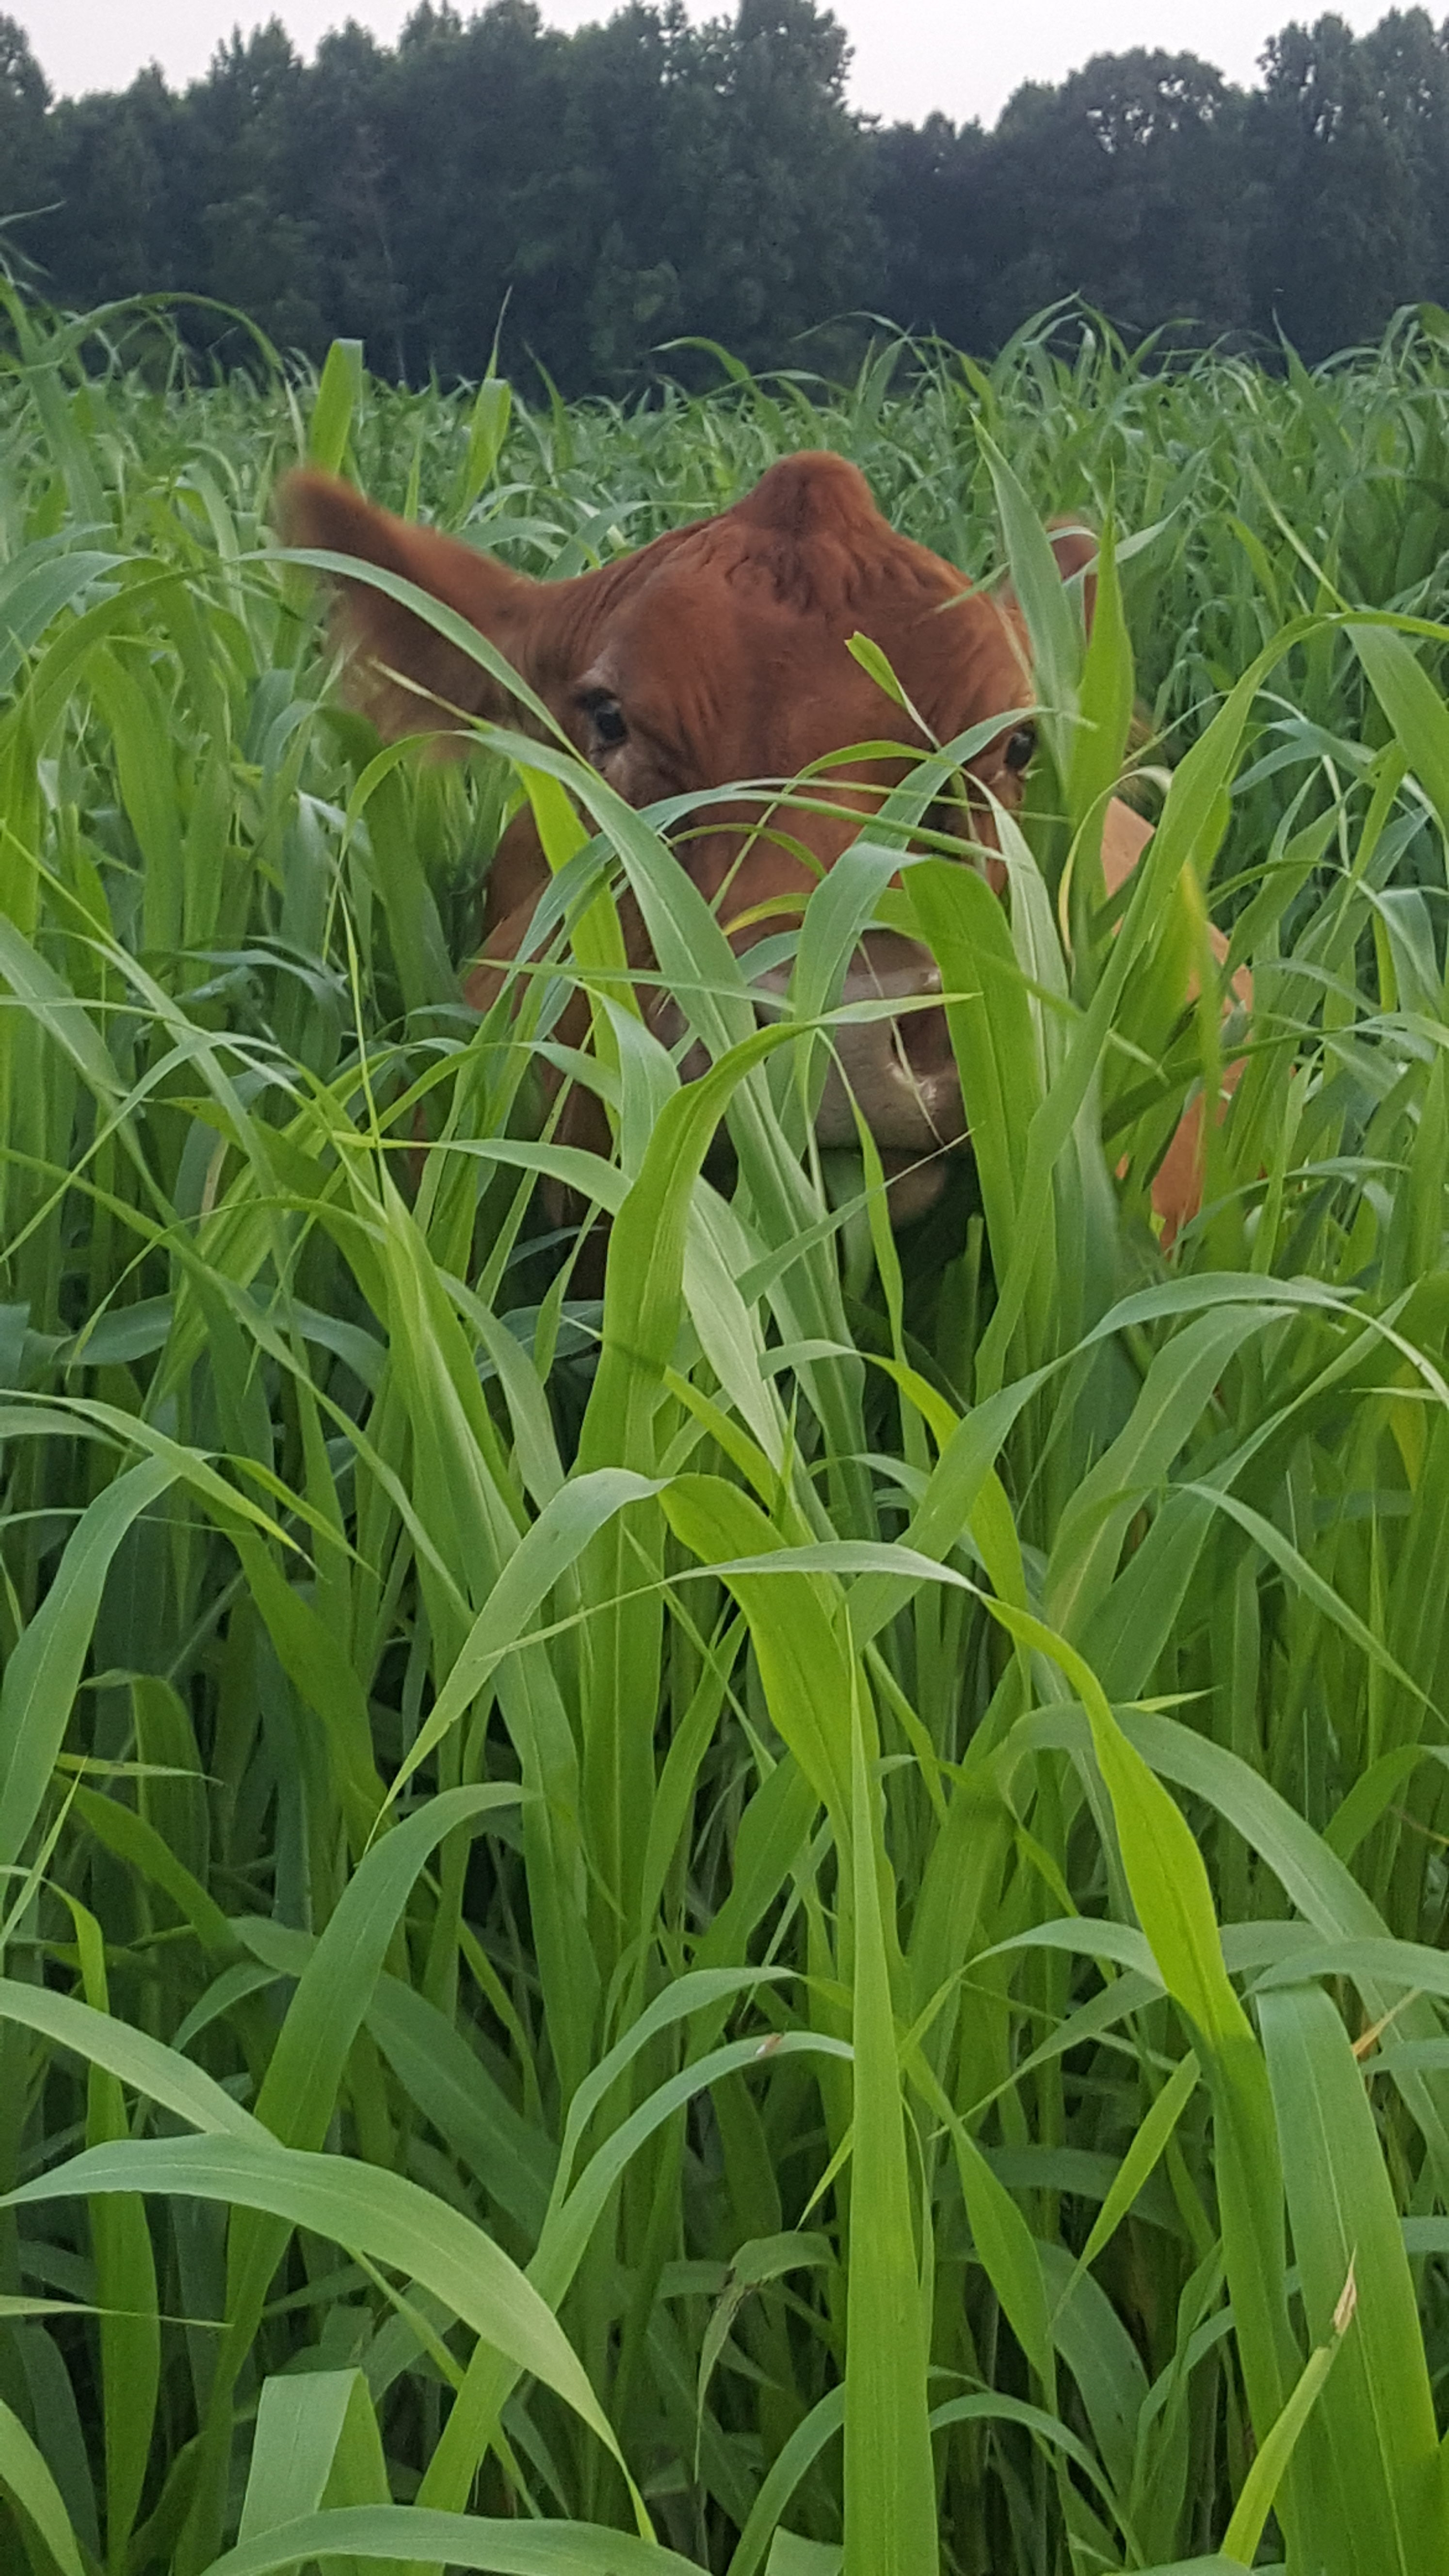 Image of cow in field